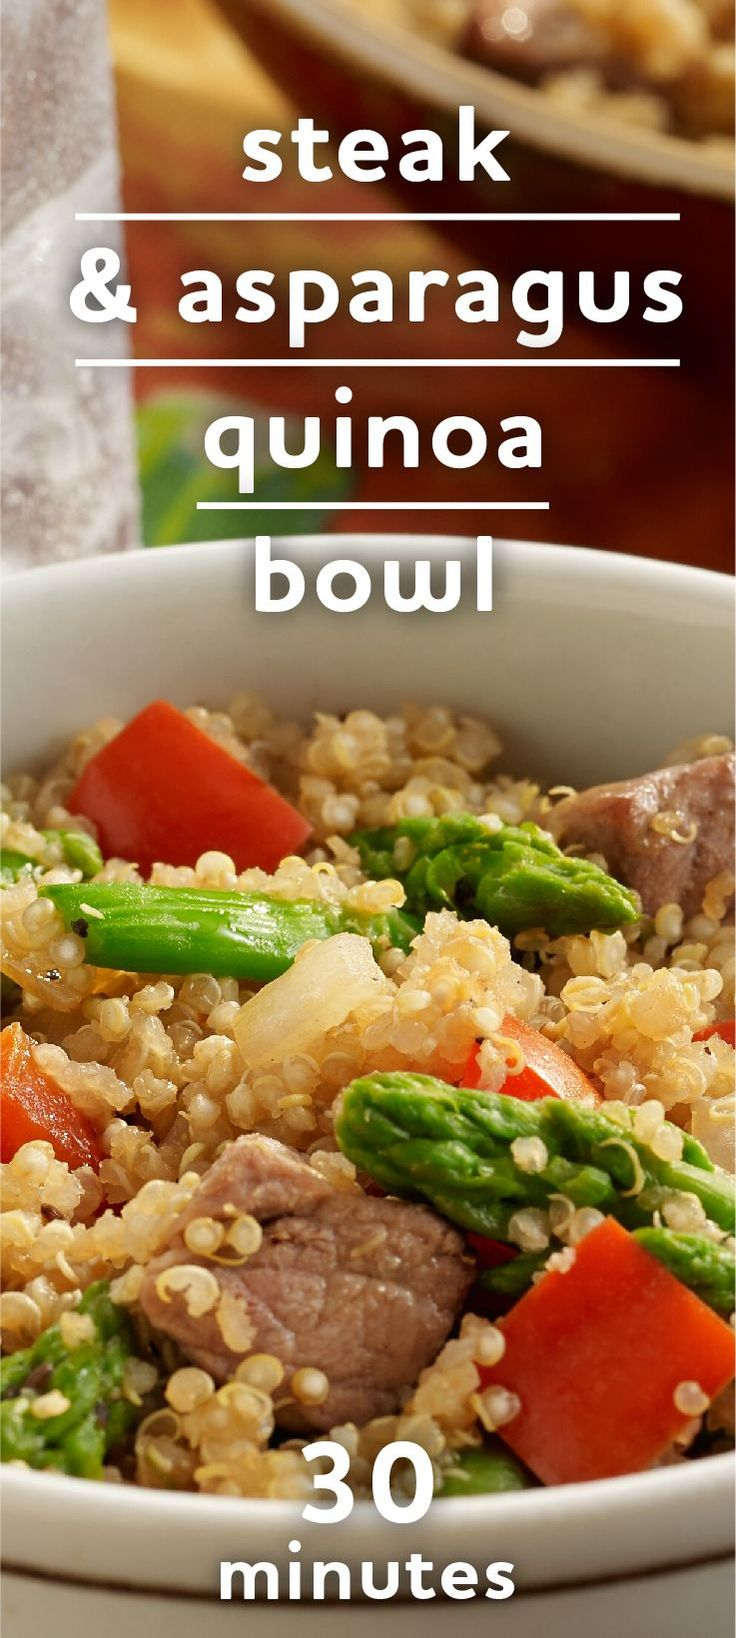 Steak and Asparagus Quinoa Bowl   Easy quinoa recipe combines cooked quinoa with tender pieces of beef  asparagus and bell pepper for a healthier main dish